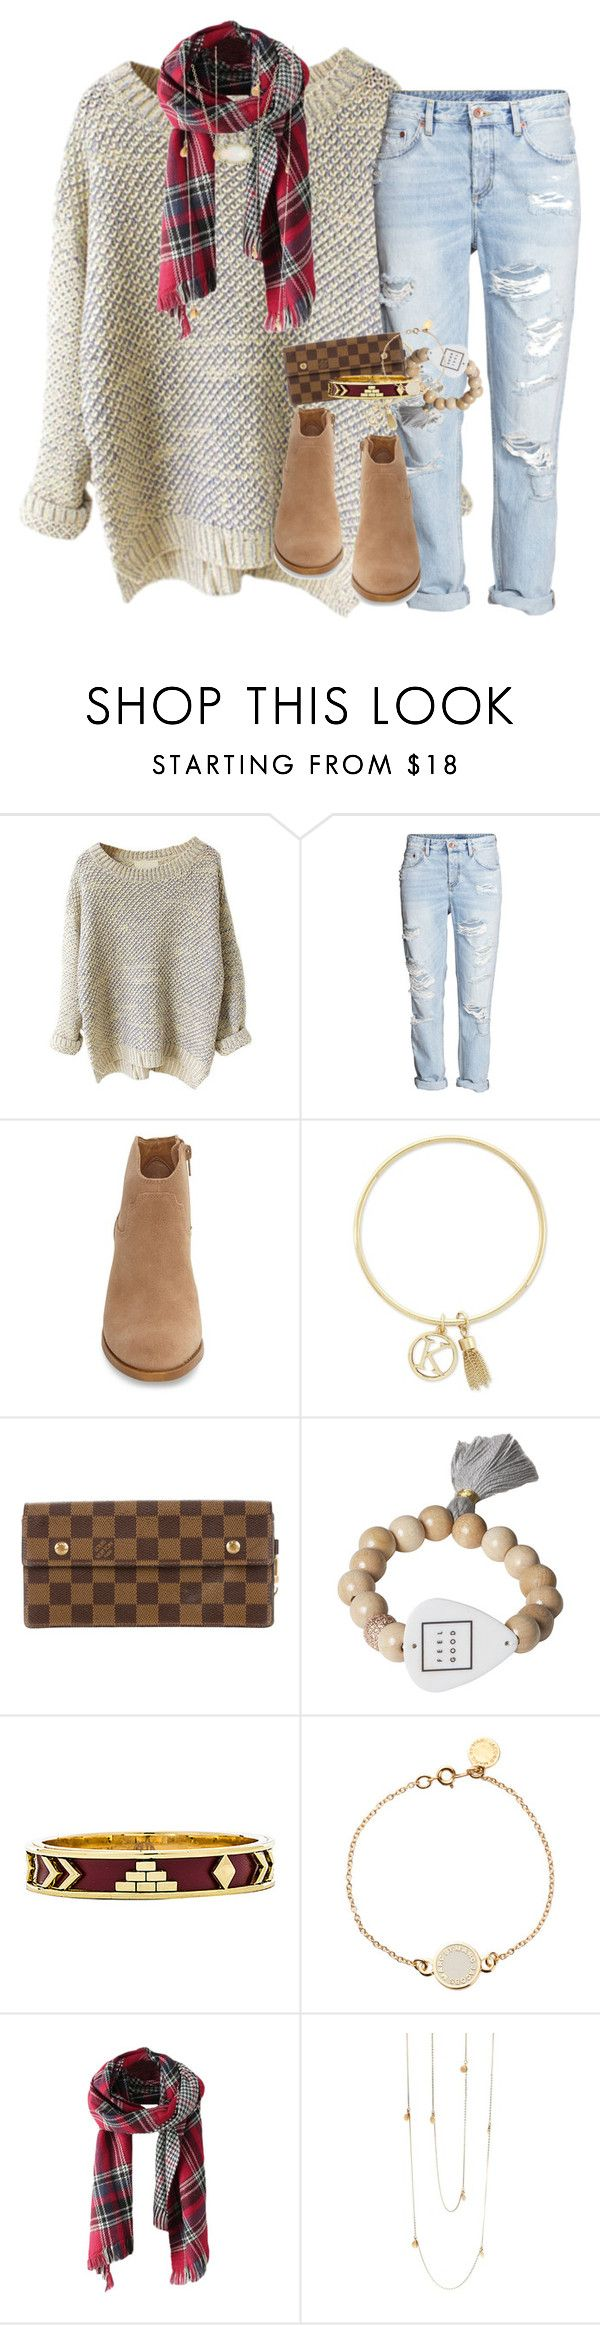 """""""comment good songs❤️❤️"""" by ellaswiftie13 ❤ liked on Polyvore featuring Lucky Brand, BCBGeneration, Louis Vuitton, Electric Picks, House of Harlow 1960, Marc by Marc Jacobs, Willow & Clo and Kendra Scott"""